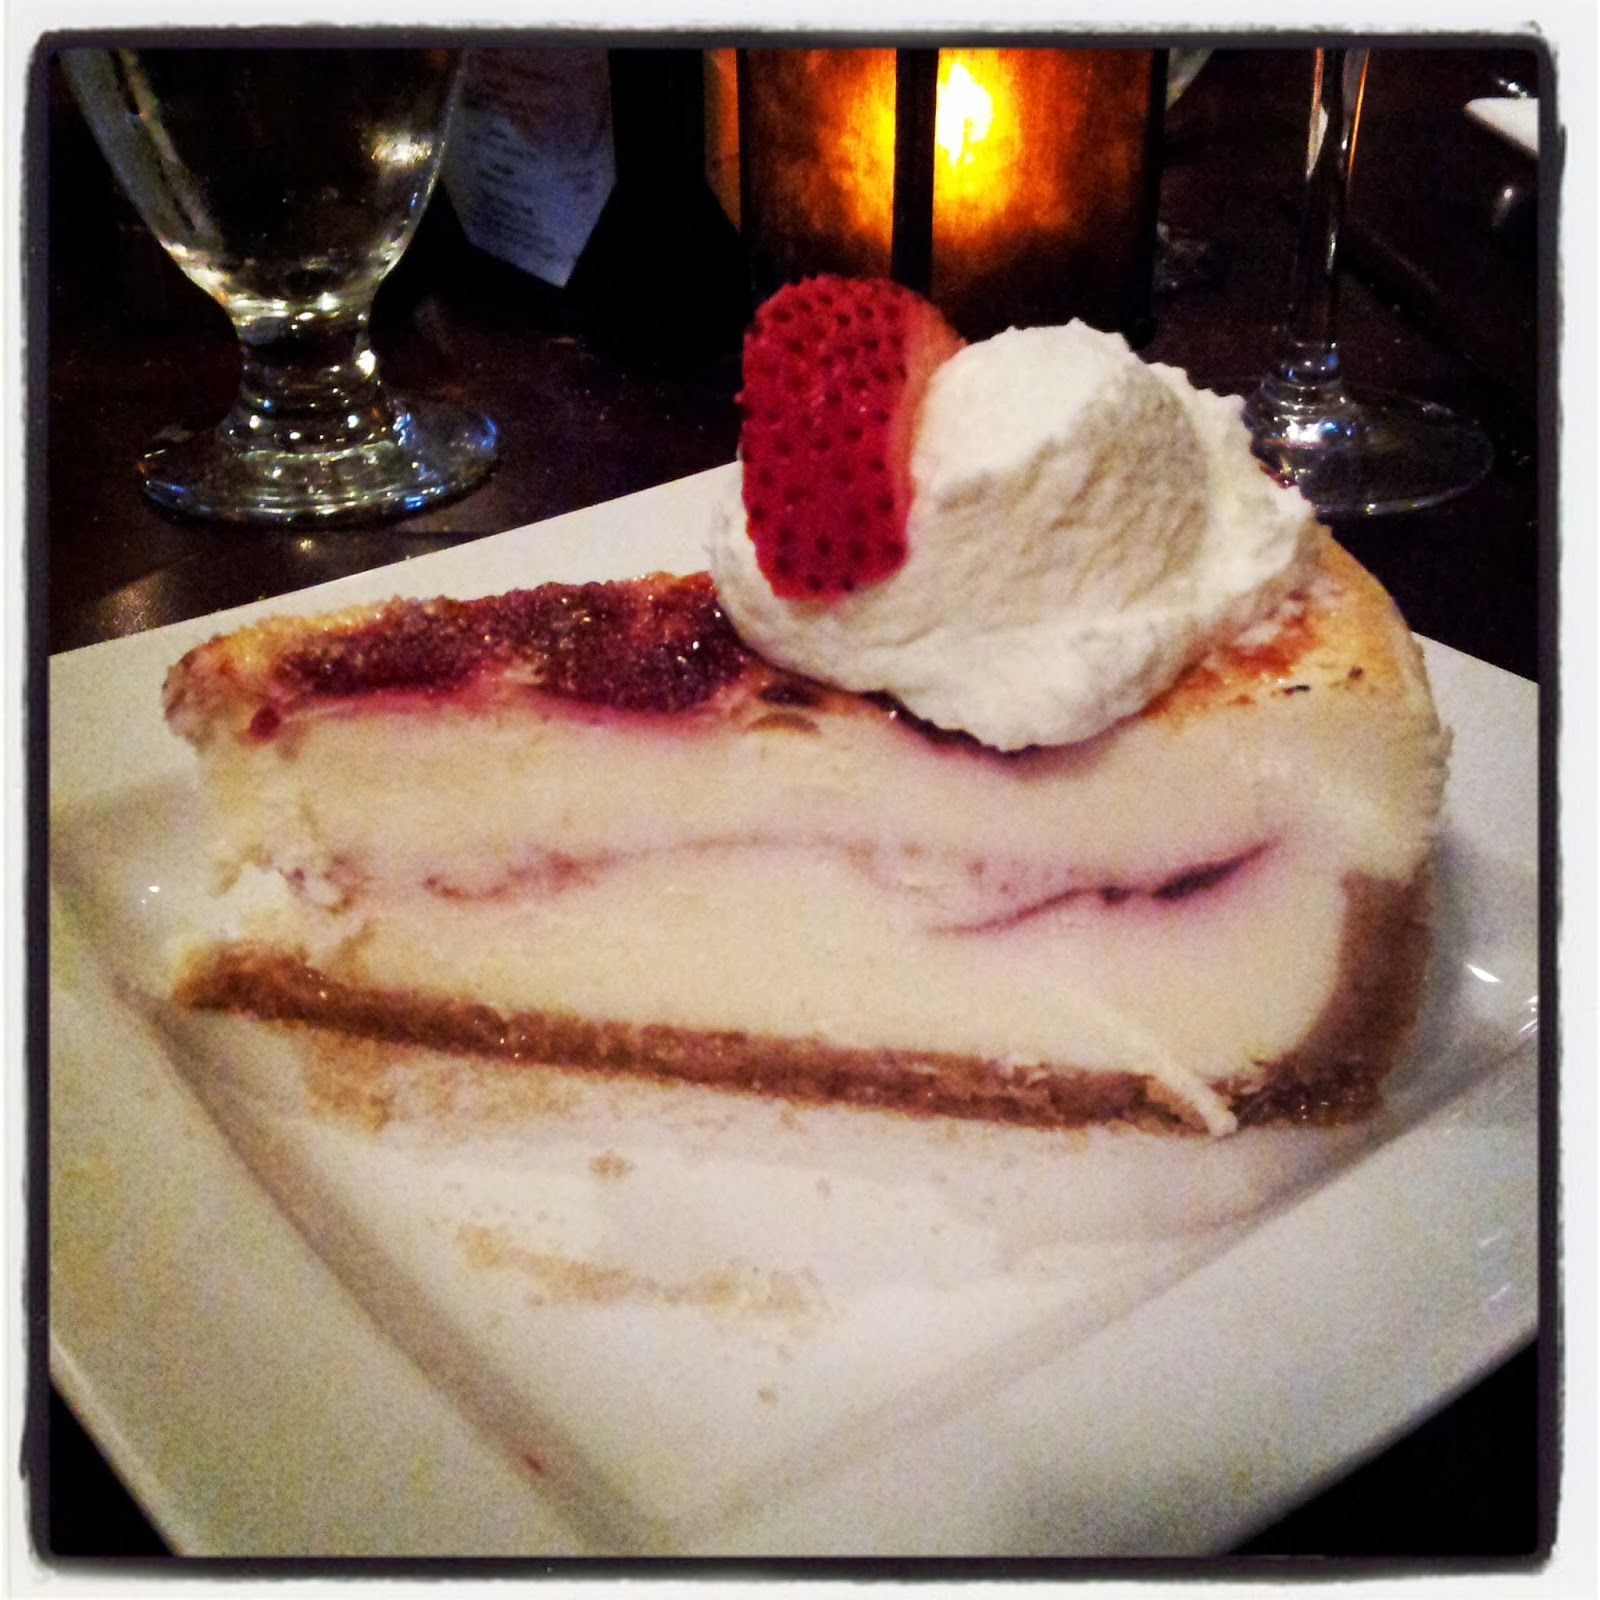 Cheesecake - 75 Chestnut, Beacon Hill, Boston